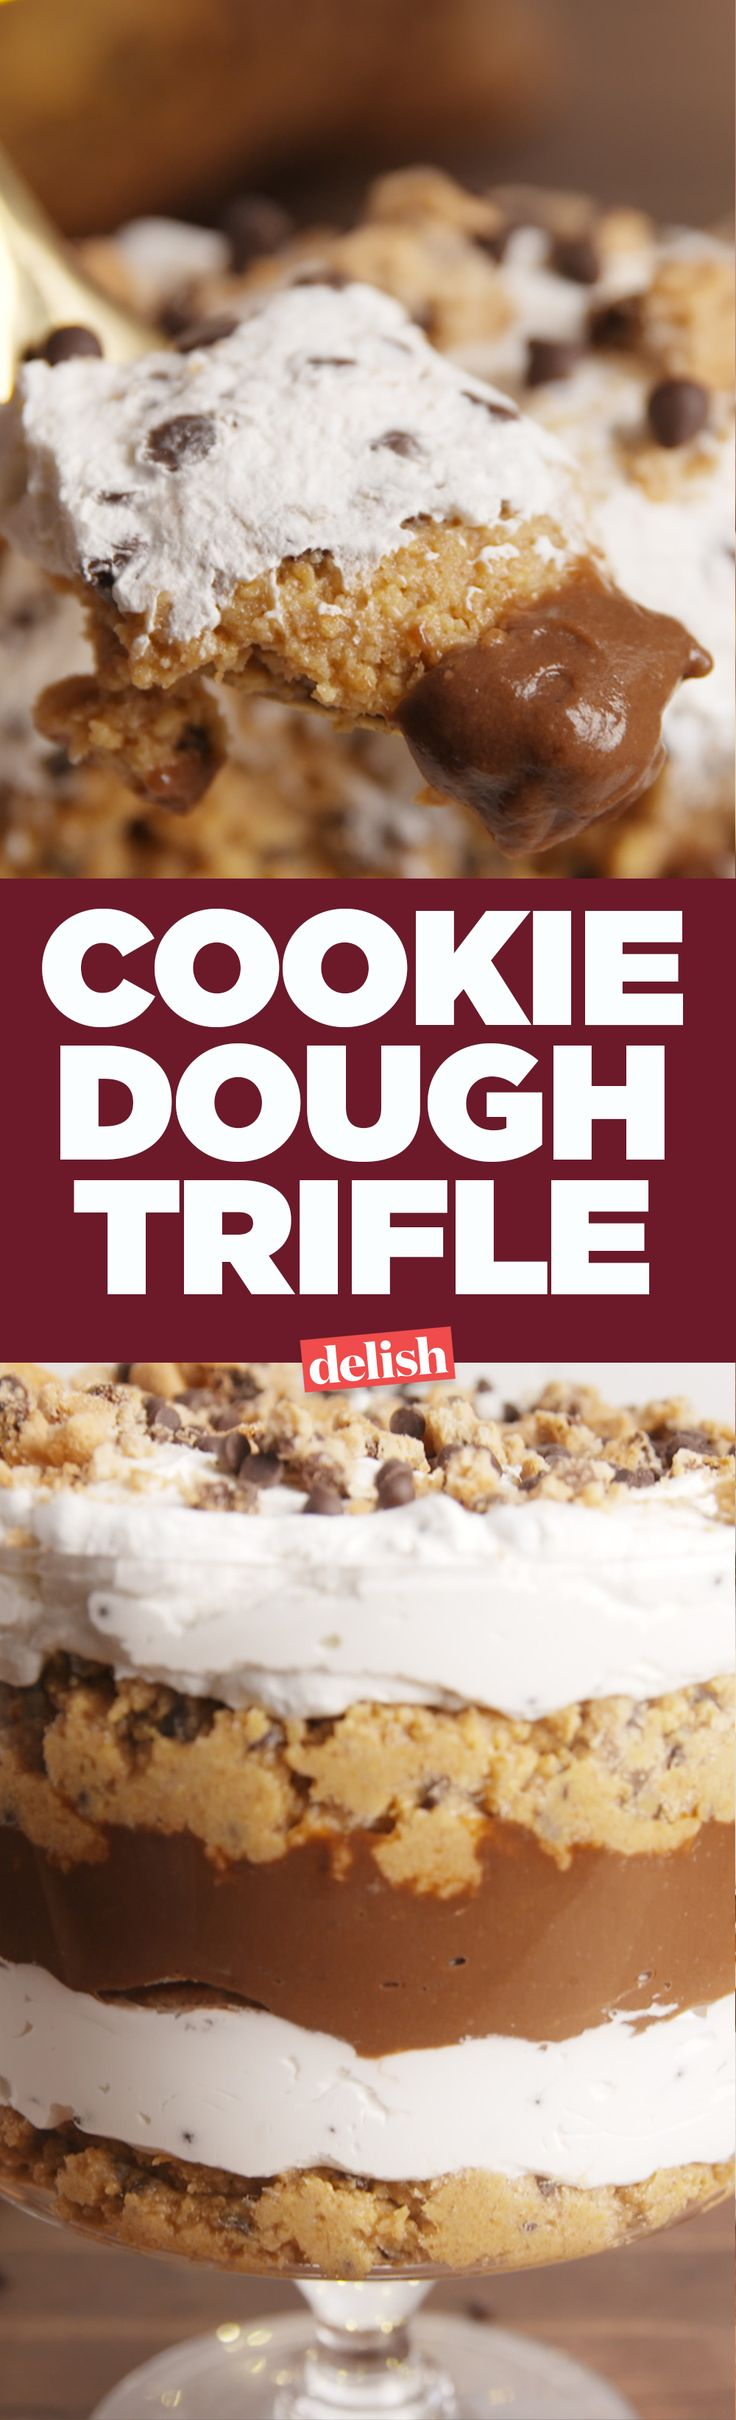 This Cookie Dough Trifle uses a brilliant hack to make cookie dough. Get the recipe on Delish.com.